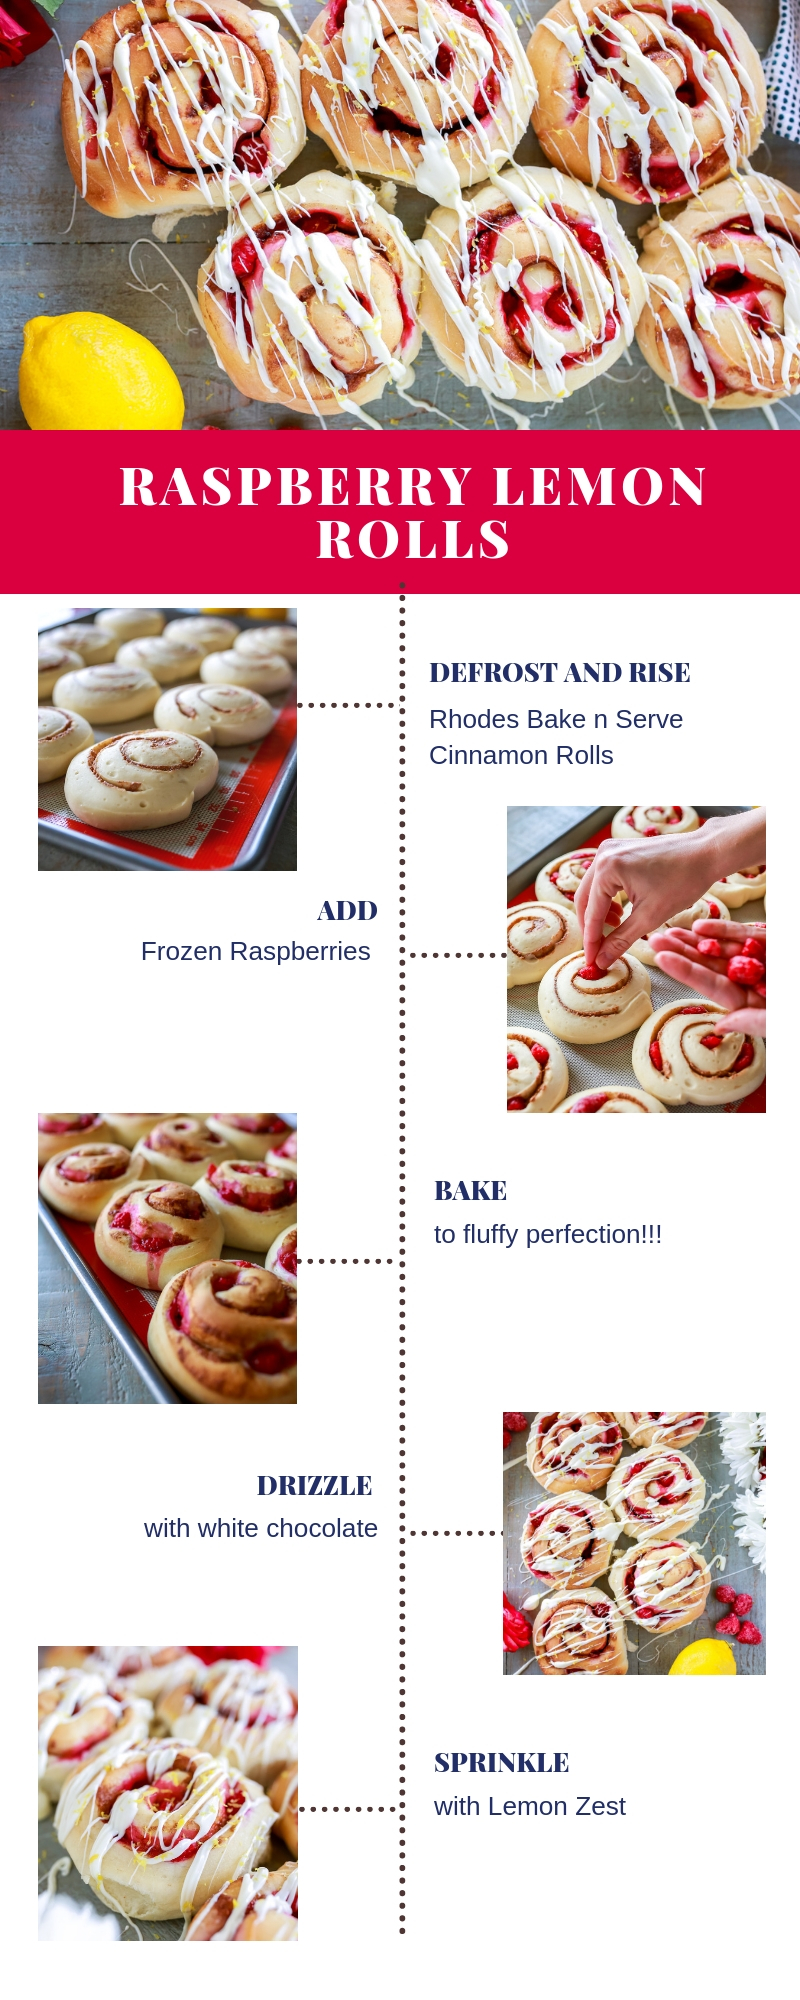 Easy recipe for soft and fluffy Raspberry Rolls with a white chocolate drizzle and lemon zest. Just the right combination of sweet, tart, and savory!